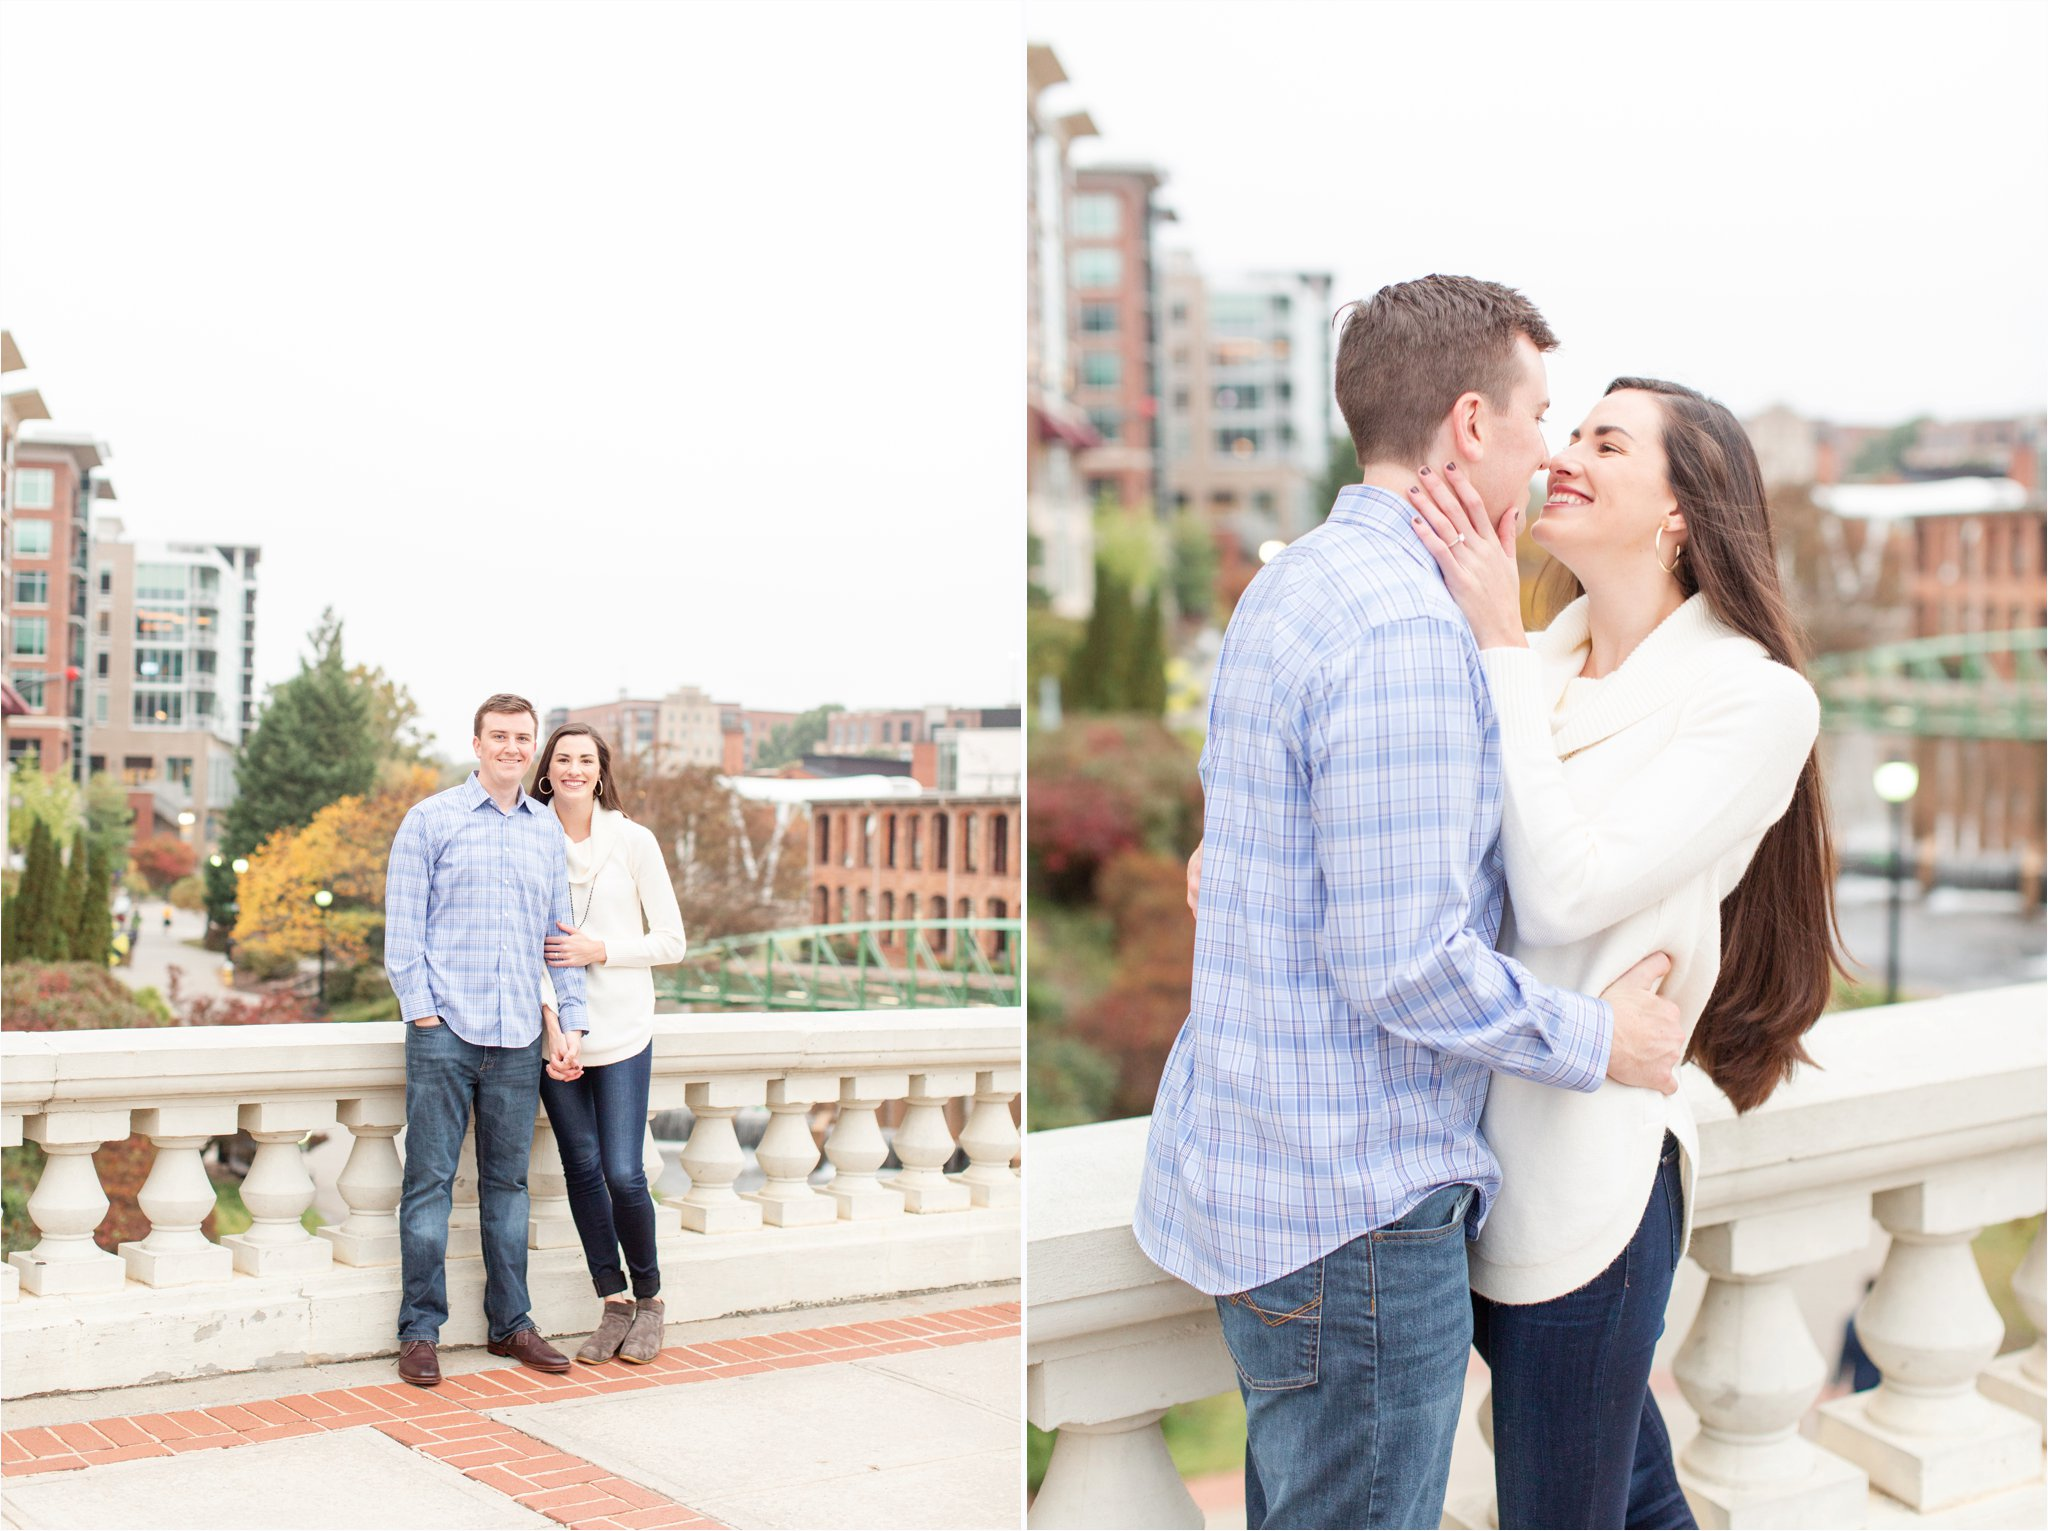 Falls Park Greenville, SC | Downtown Greenville Engagement Photos | Christa Rene Photography